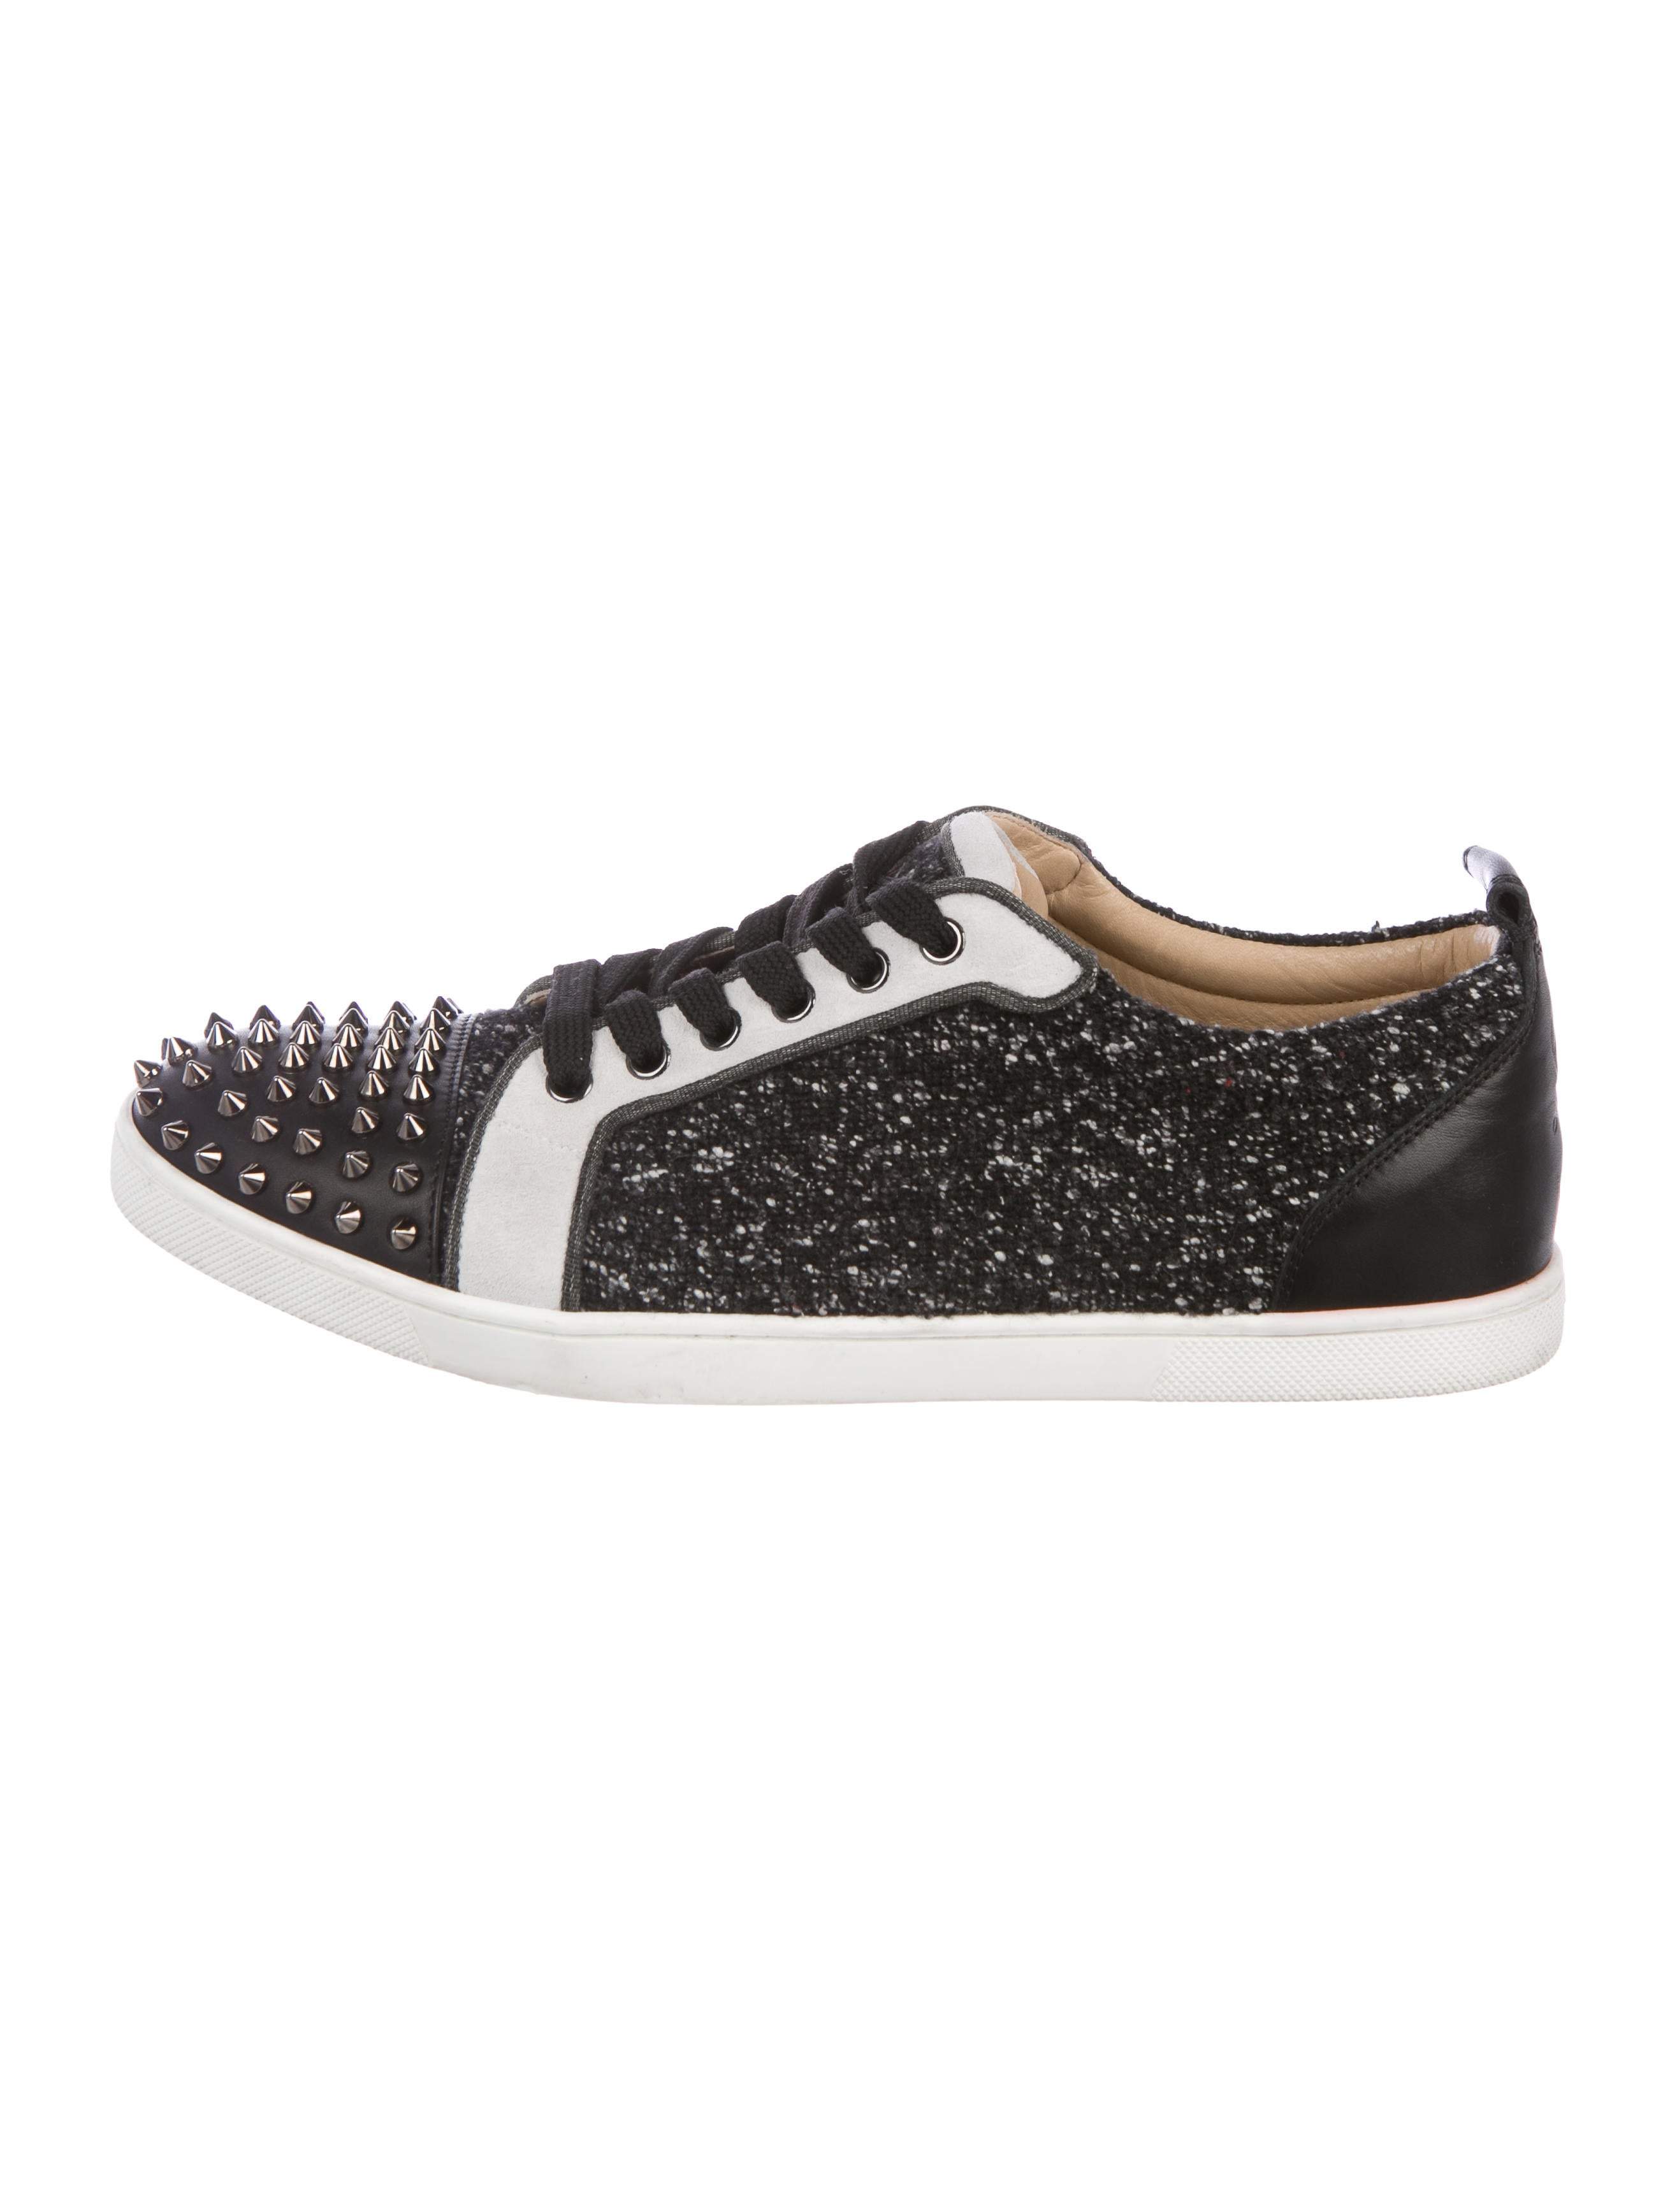 b35945fb561 Christian Louboutin Louis Spikes Junior Tweed Sneakers - Shoes ...